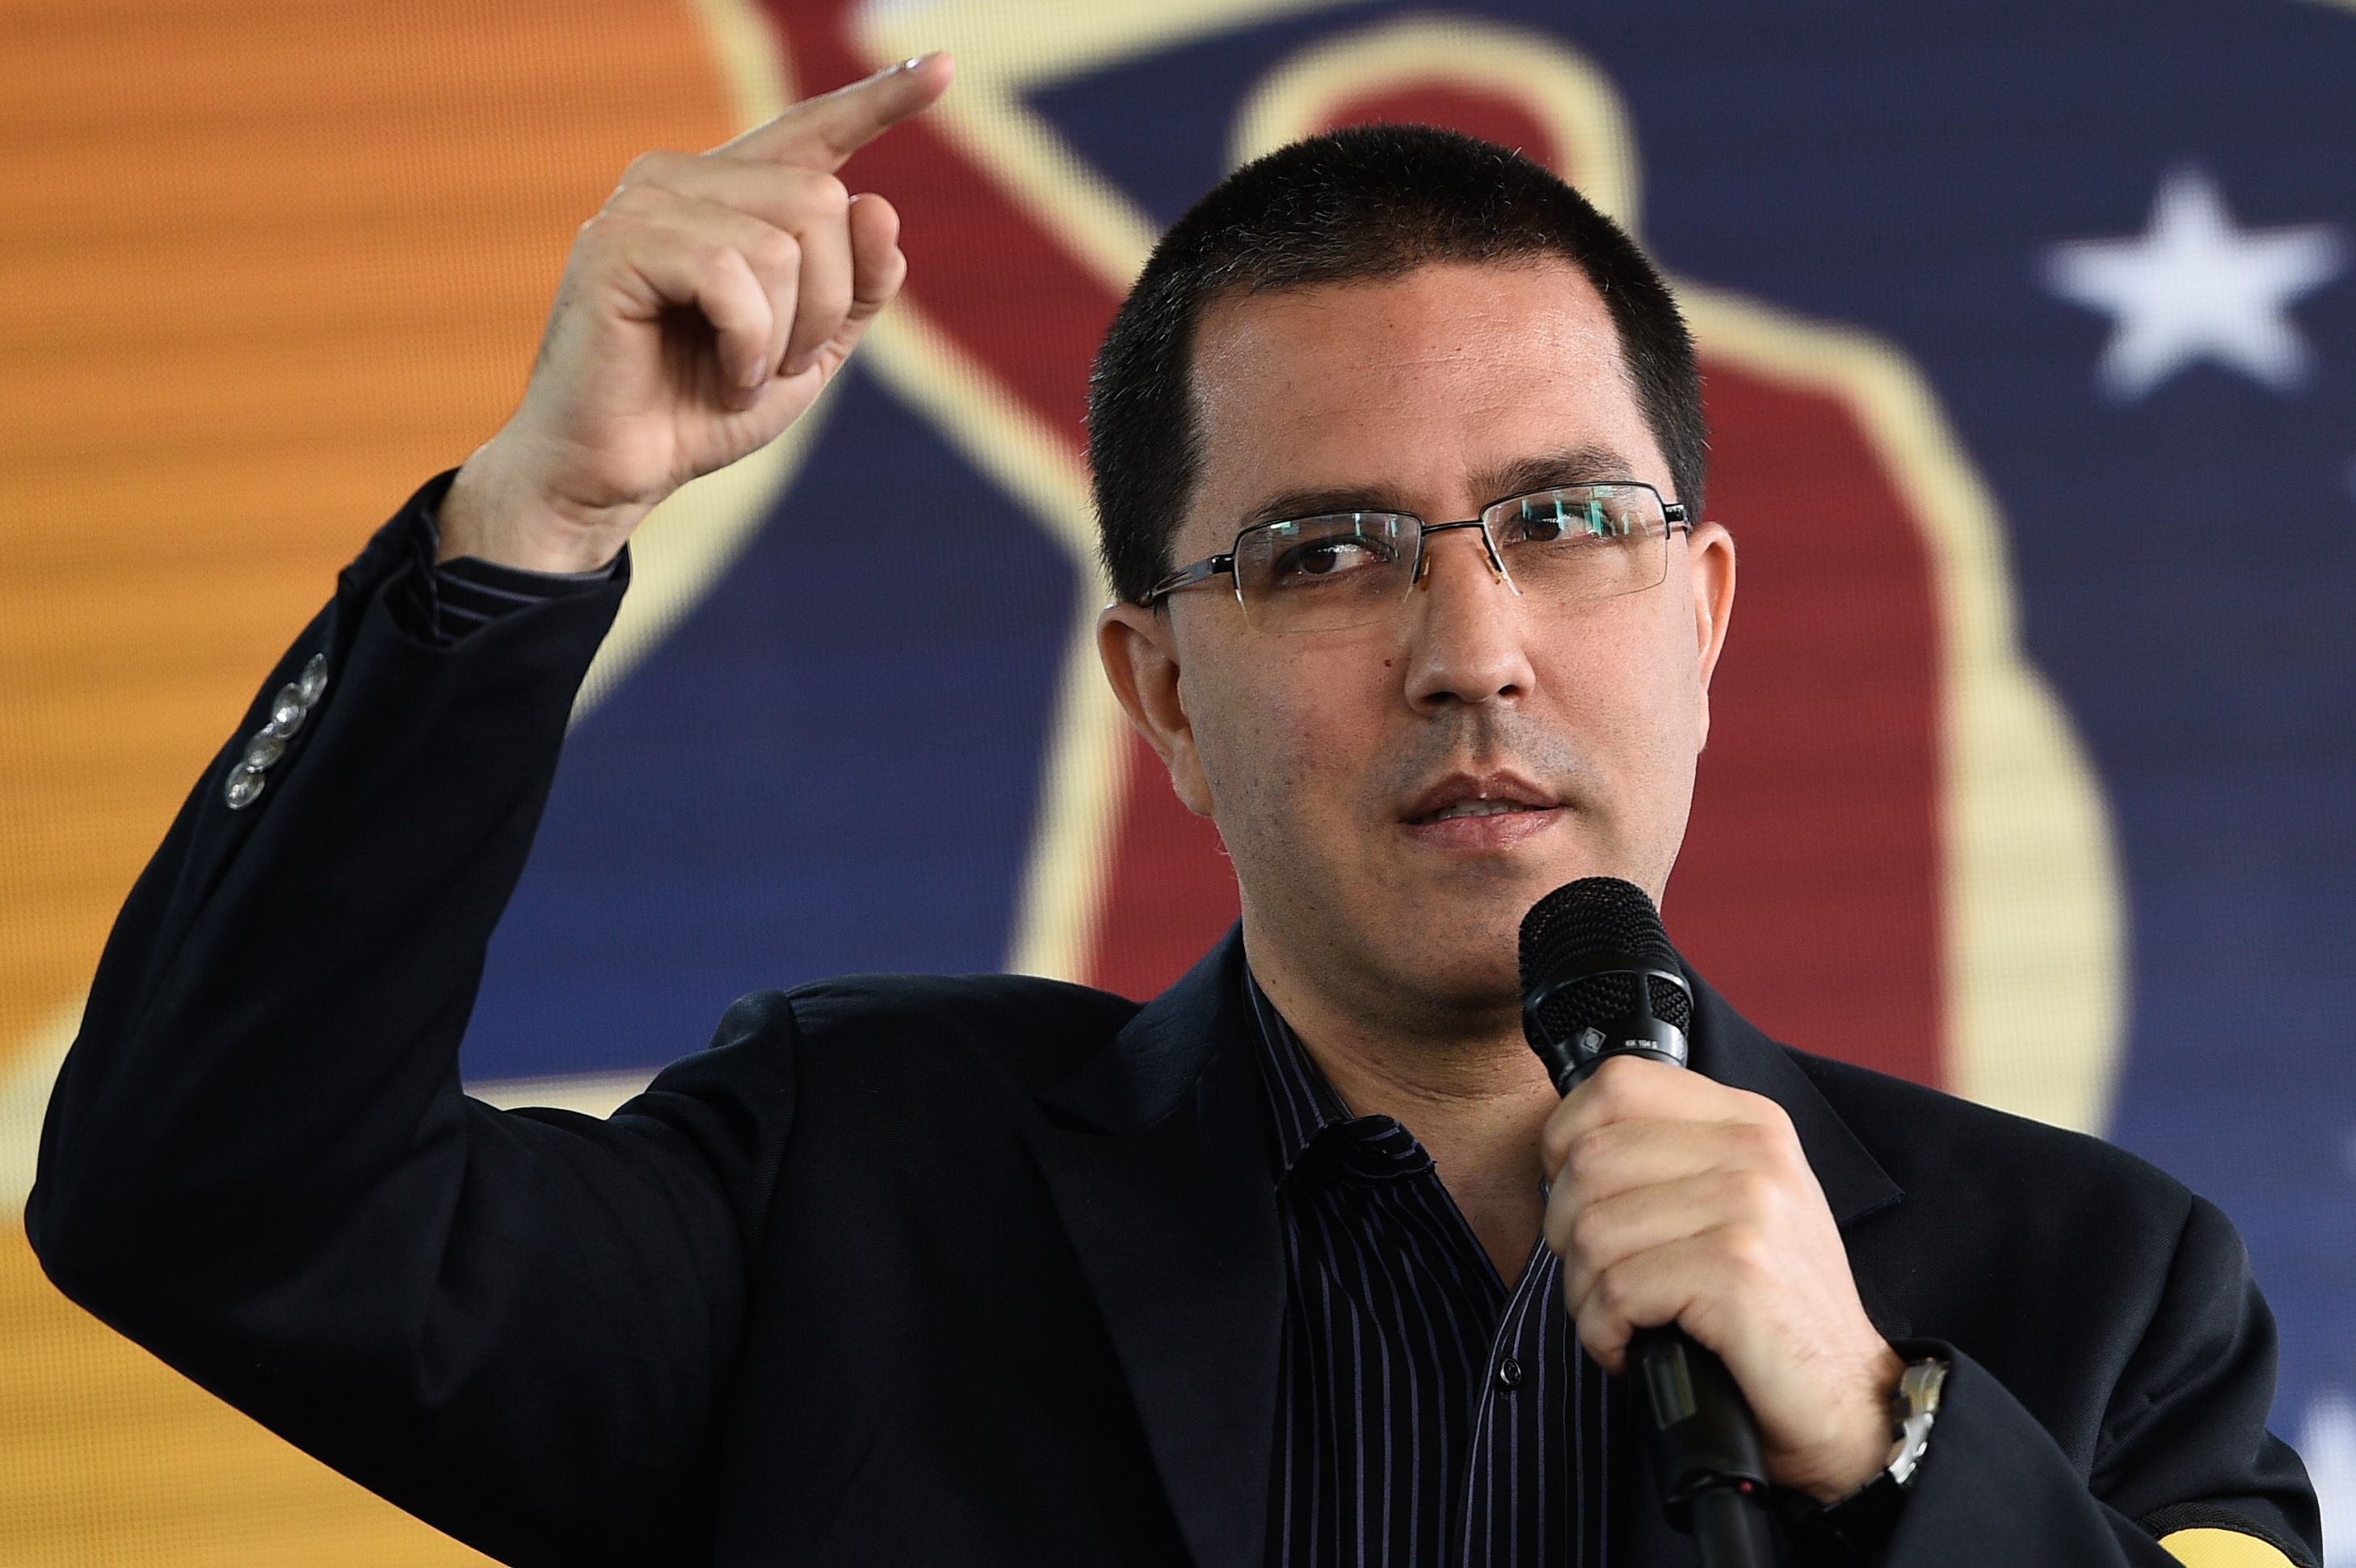 "Venezuela's Foreign Minister Jorge Arreaza delivers a speech during a commemoration for the ""27th Anniversary of the Military Rebellion of the 4FEB92 and National Dignity Day"", at the Foreign Ministry in Caracas, on February 4, 2019. - The United Nations will not join any group of nations promoting initiatives to resolve the crisis in Venezuela, the UN chief said Monday, indicating he will not attend a meeting in Uruguay this week of several countries. Mexico and Uruguay had hoped that UN Secretary-General Antonio Guterres would attend a conference in Montevideo on Thursday aimed at promoting dialogue between Venezuela's President Nicolas Maduro and opposition leader Juan Guaido. (Photo by Federico PARRA / AFP) (Photo credit should read FEDERICO PARRA/AFP/Getty Images)"